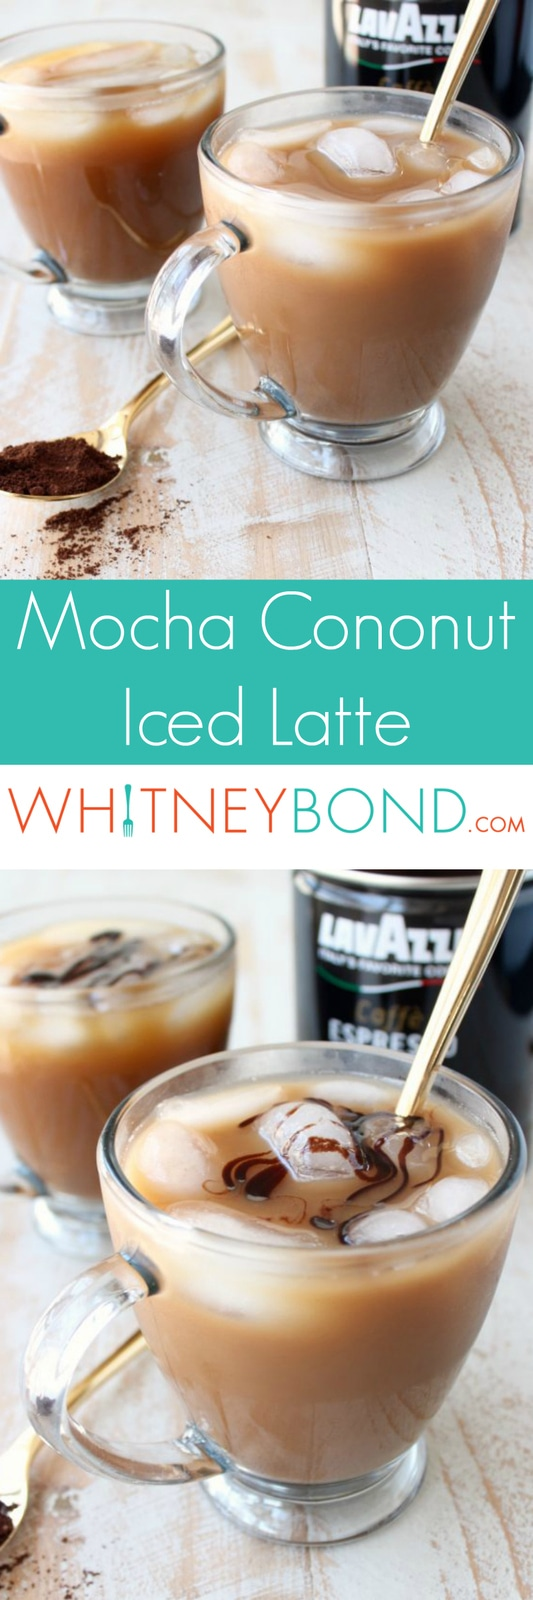 Learn how to make a Mocha Coconut Iced Latte at home in under 10 minutes! This refreshing, flavorful coffee drink can be served over ice or blended.